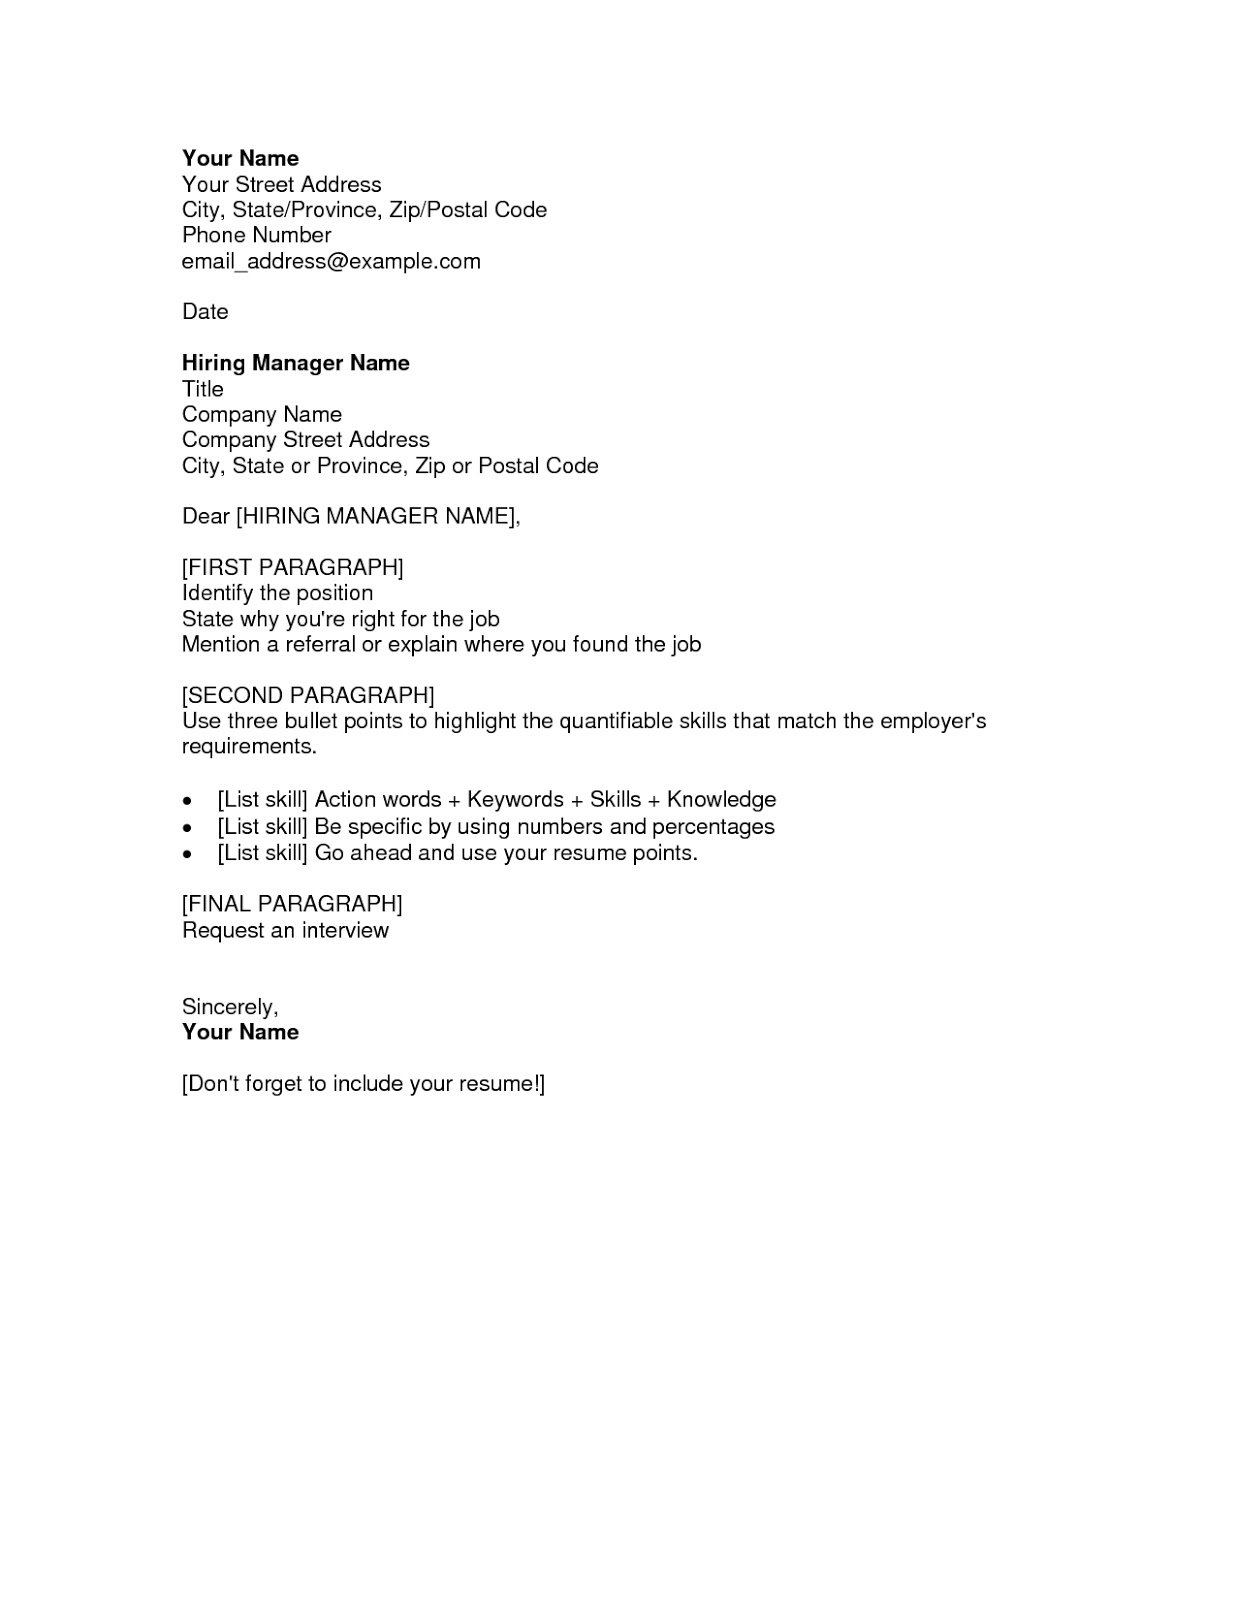 Free cover letter samples for resumes sample resumes for Format of covering letter for cv